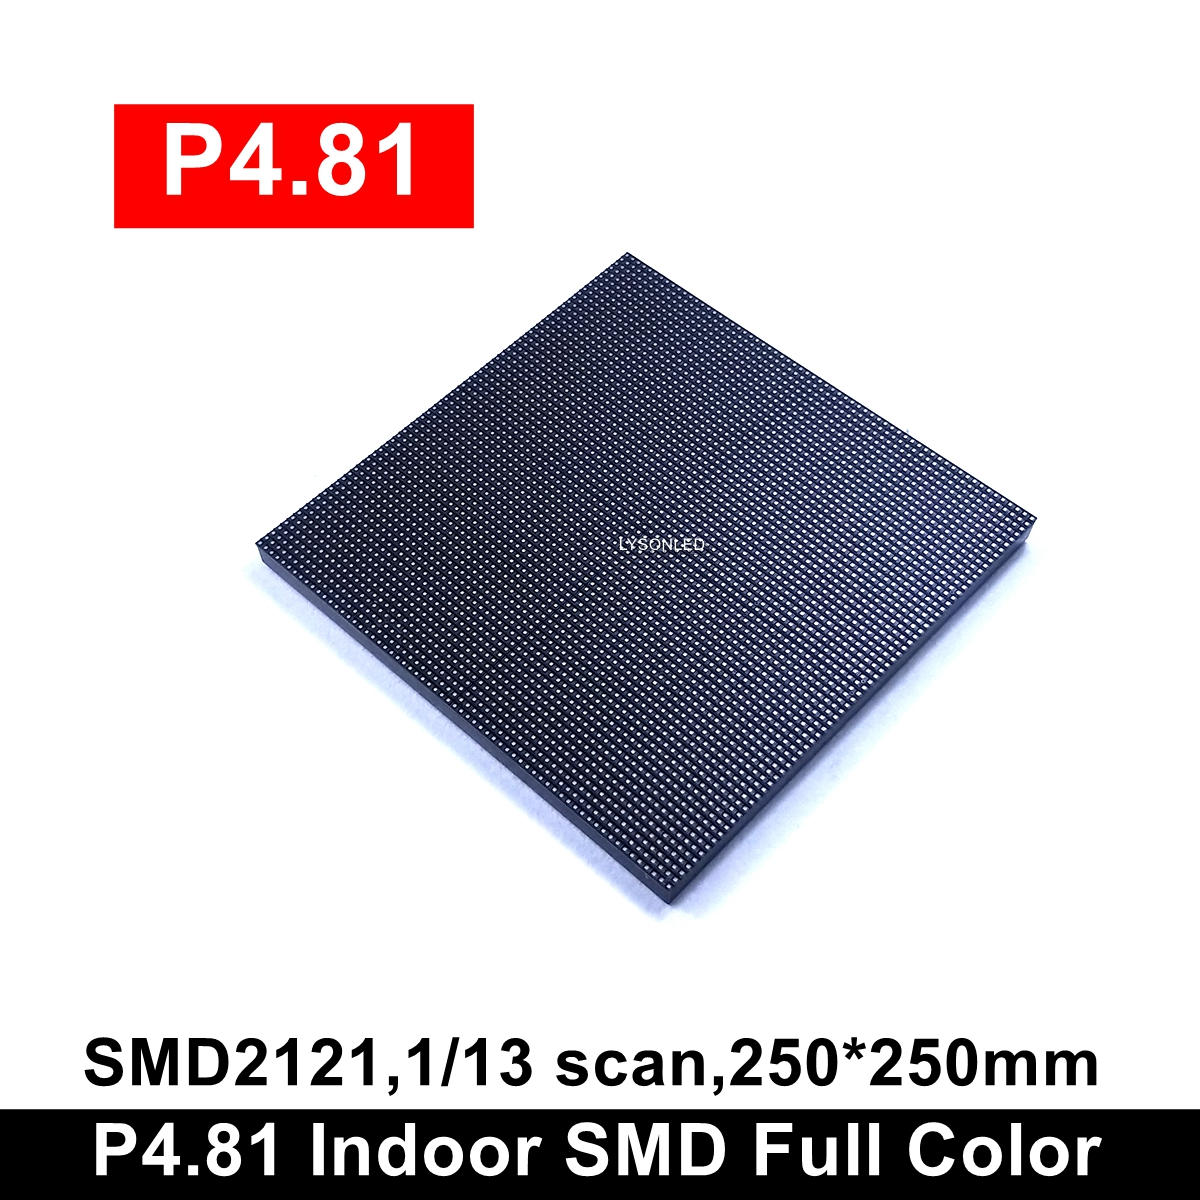 P4.81mm Indoor Rental SMD Full Color Led Module 250x250mm,Broadcasting And Monitoring Room LED Video TV Panel(P3.91 Available)